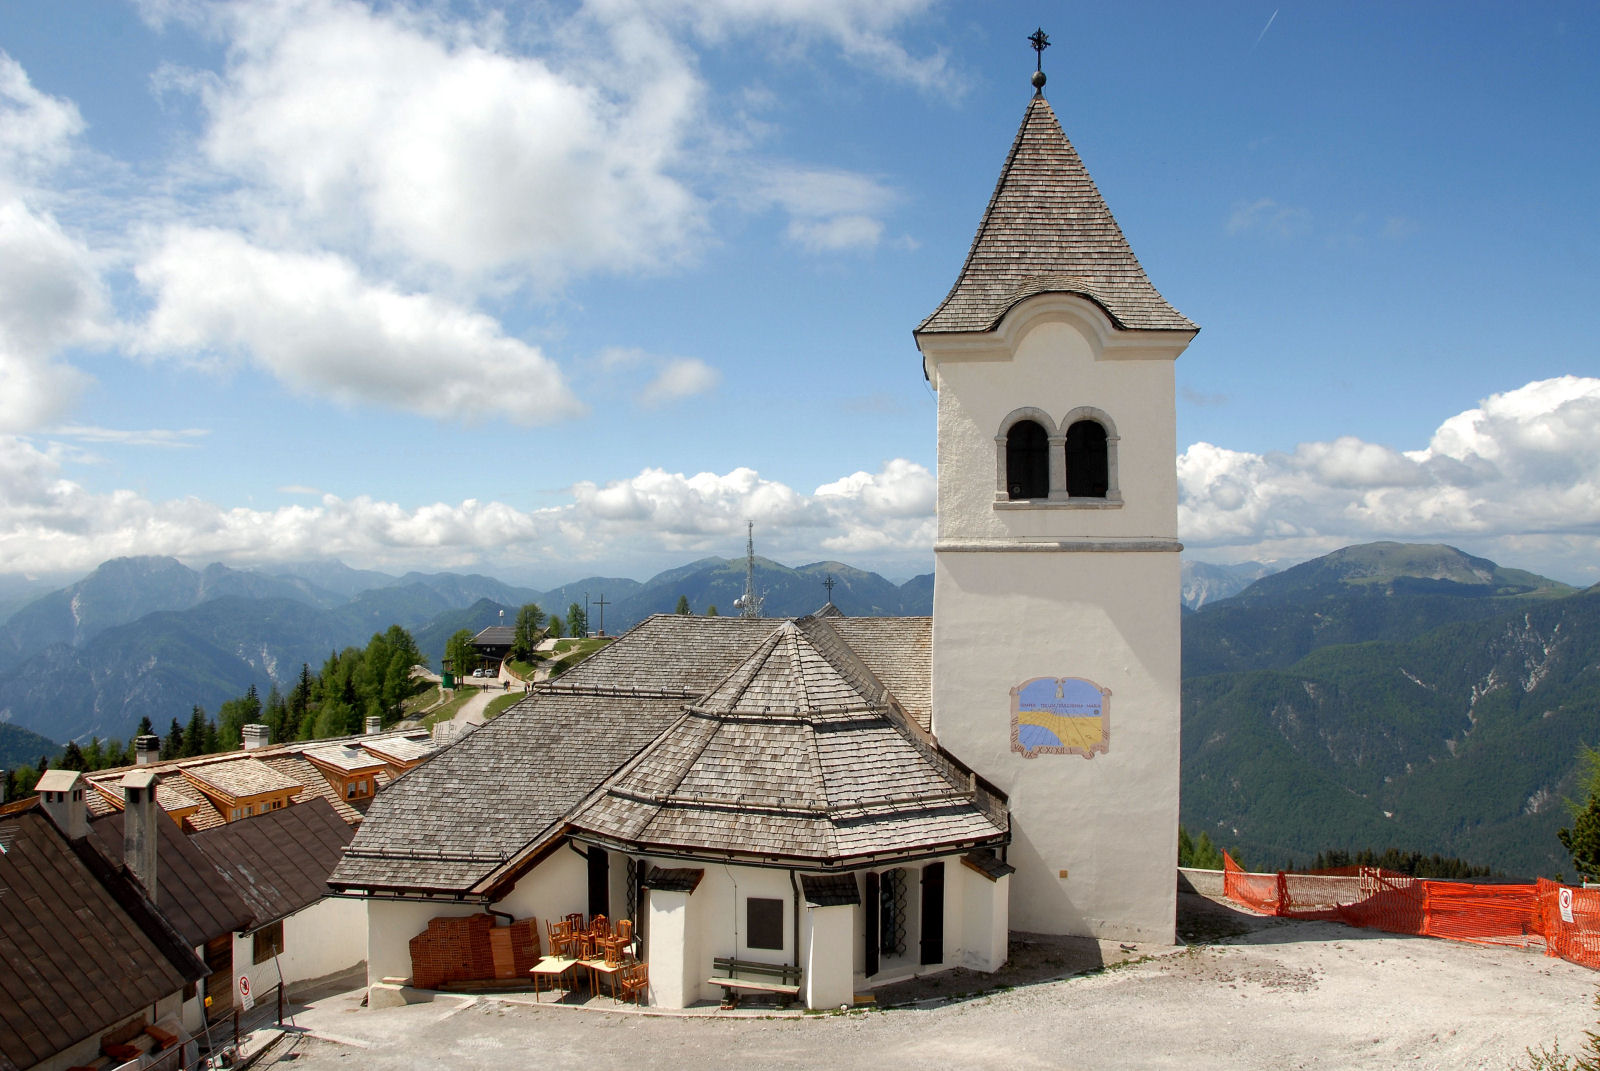 Monte Lussari with the pilgrimage church Santa Maria In Excelsis